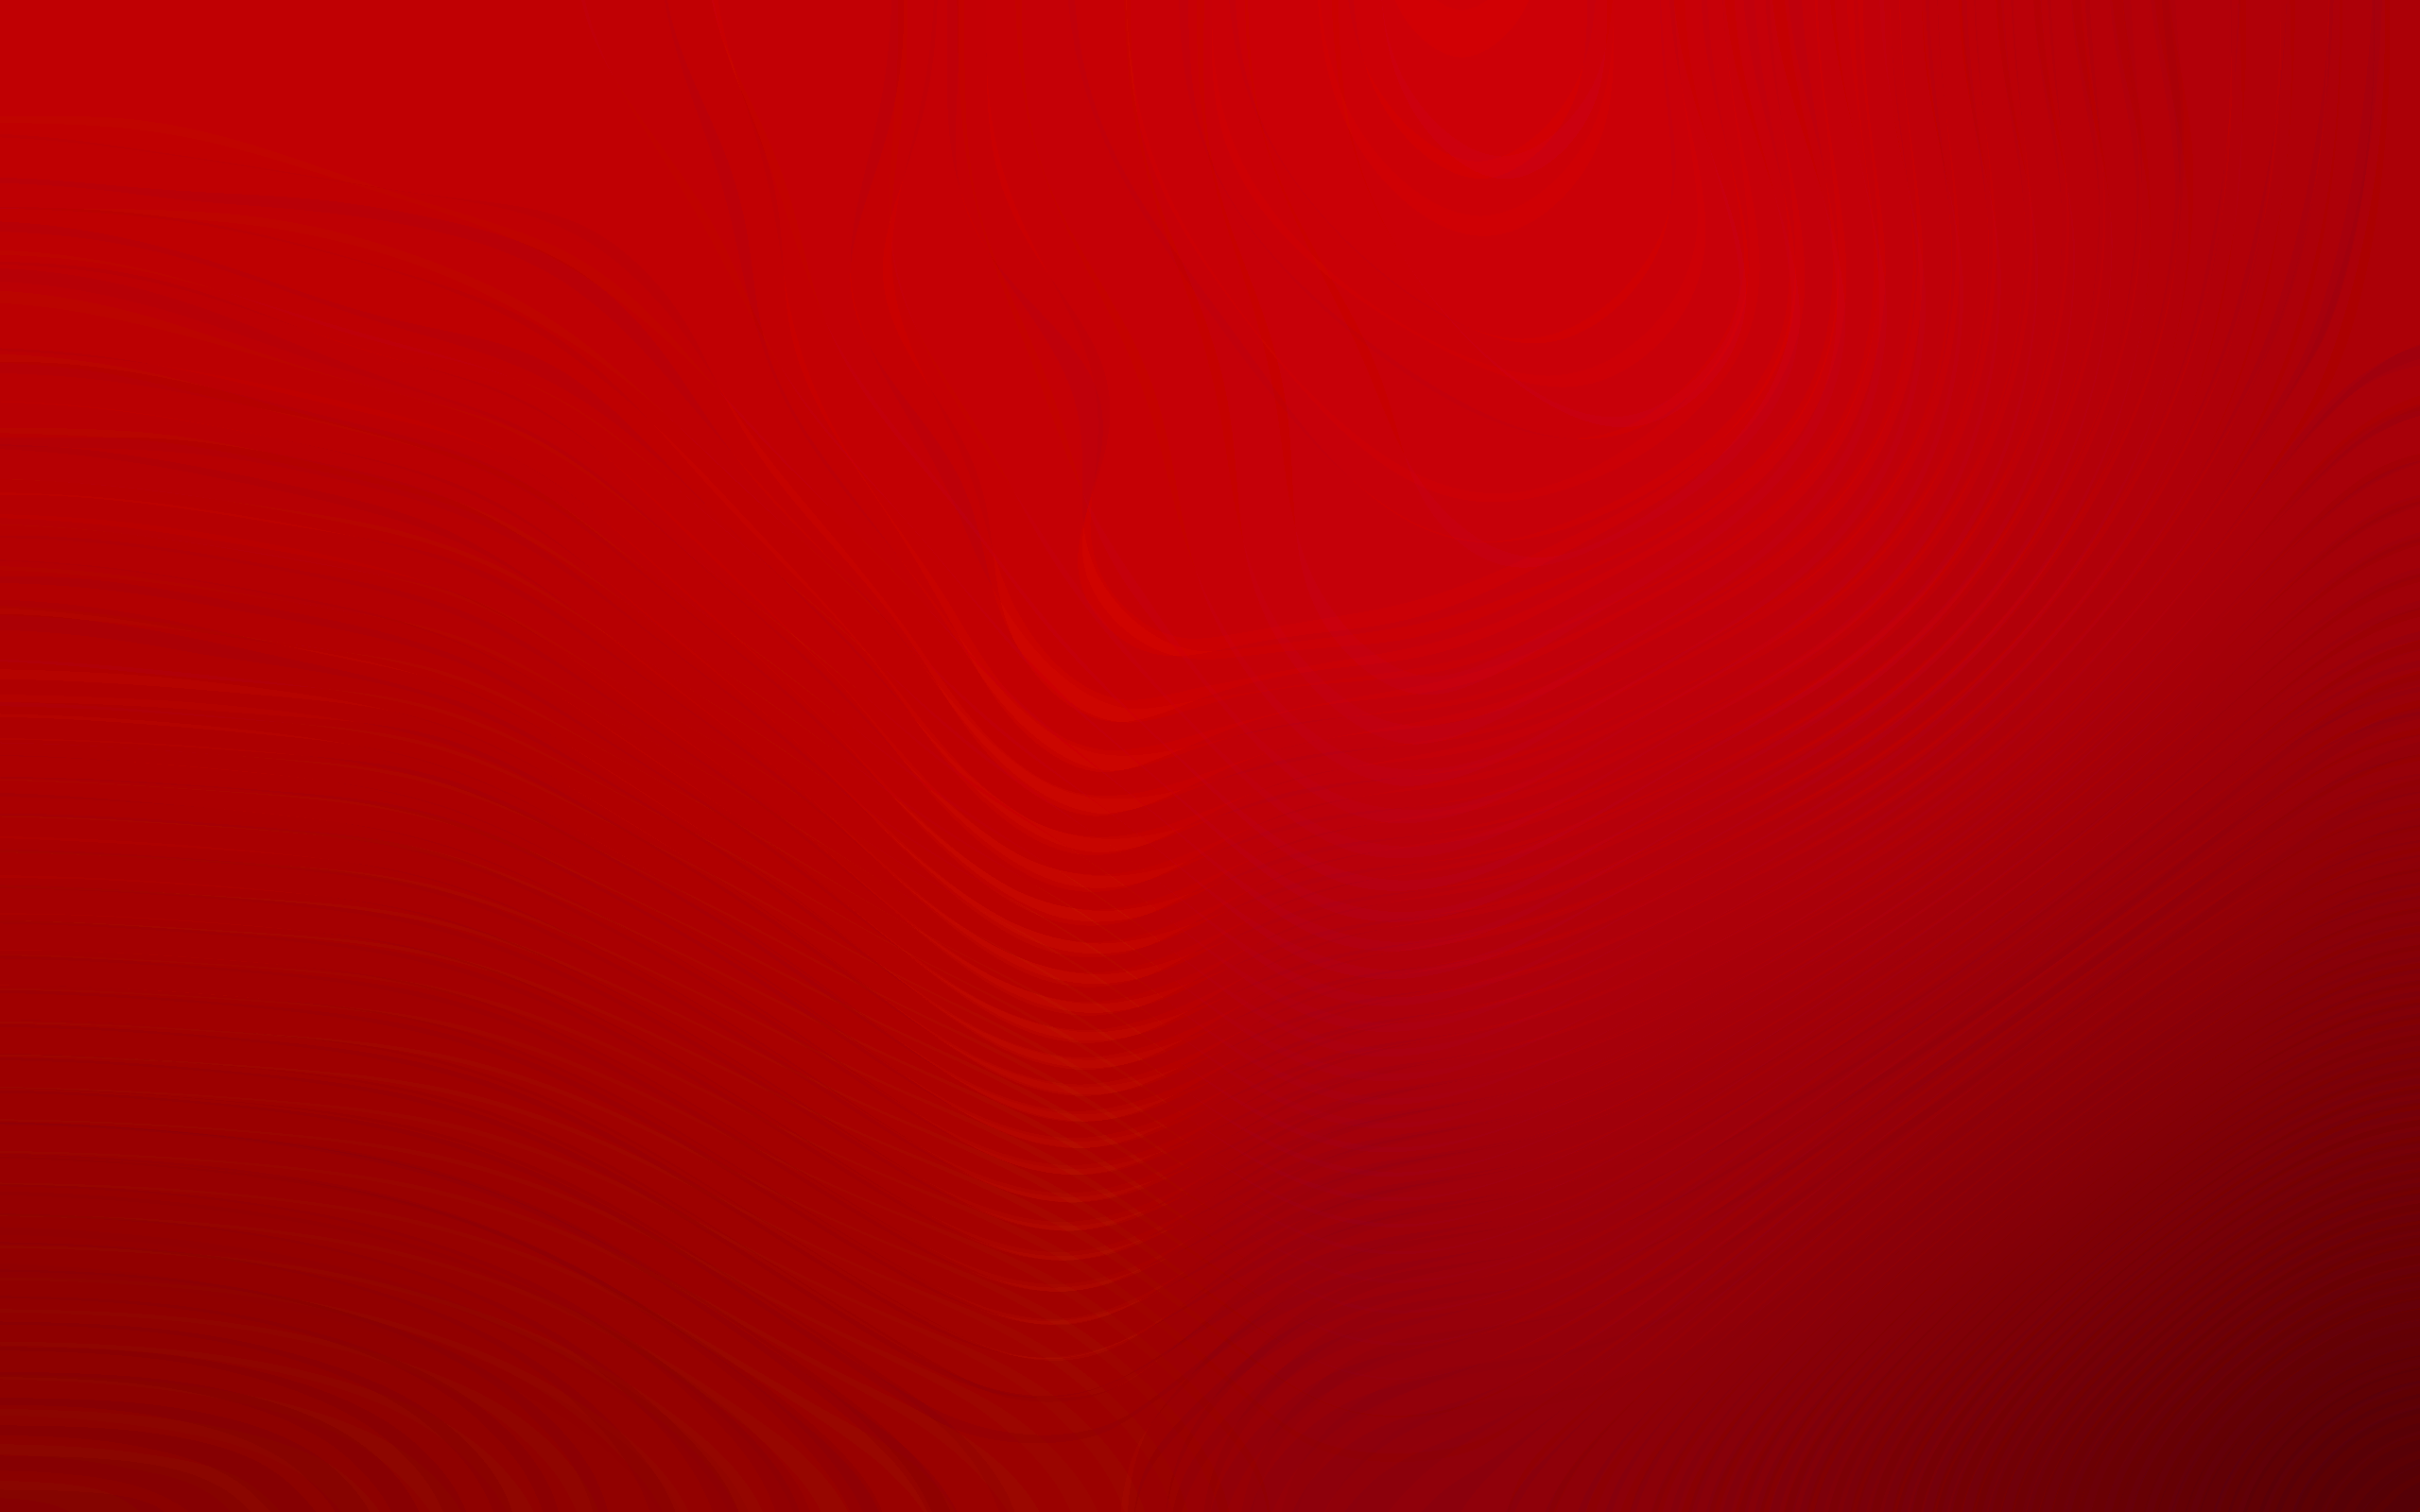 Red Wallpaper Gradient Black | Wallpaper | Basic Background